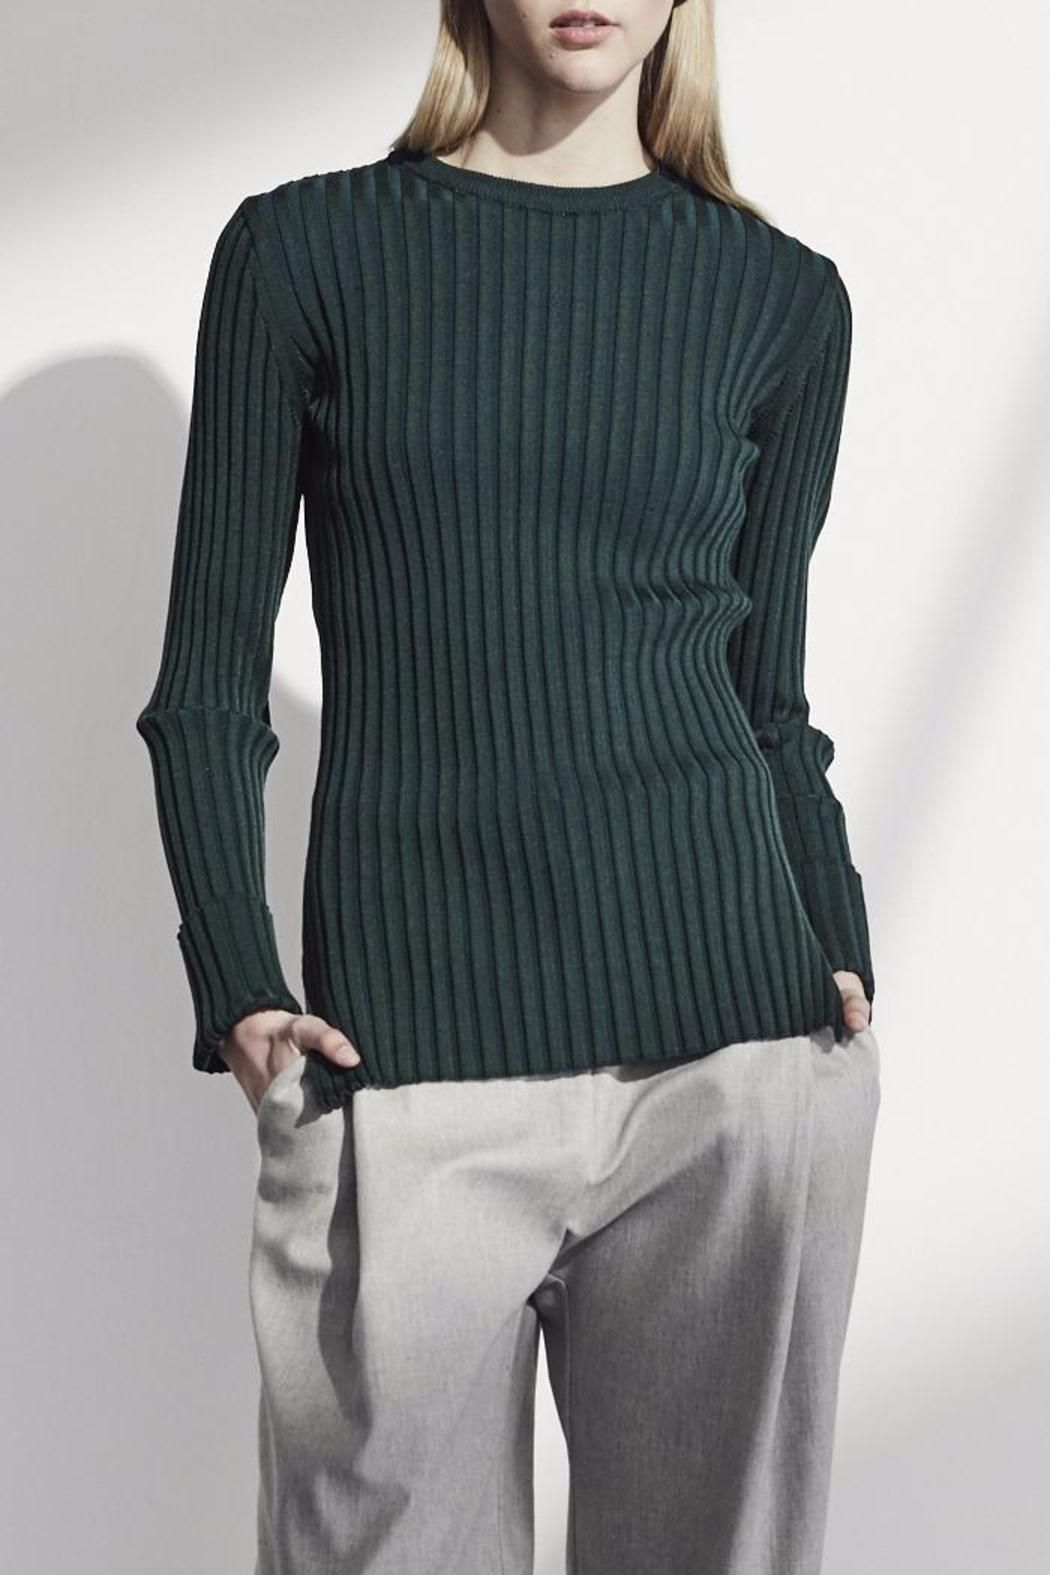 Achro Green Ribbed Sweater | Scoop neck, Sleeve and Long sleeve